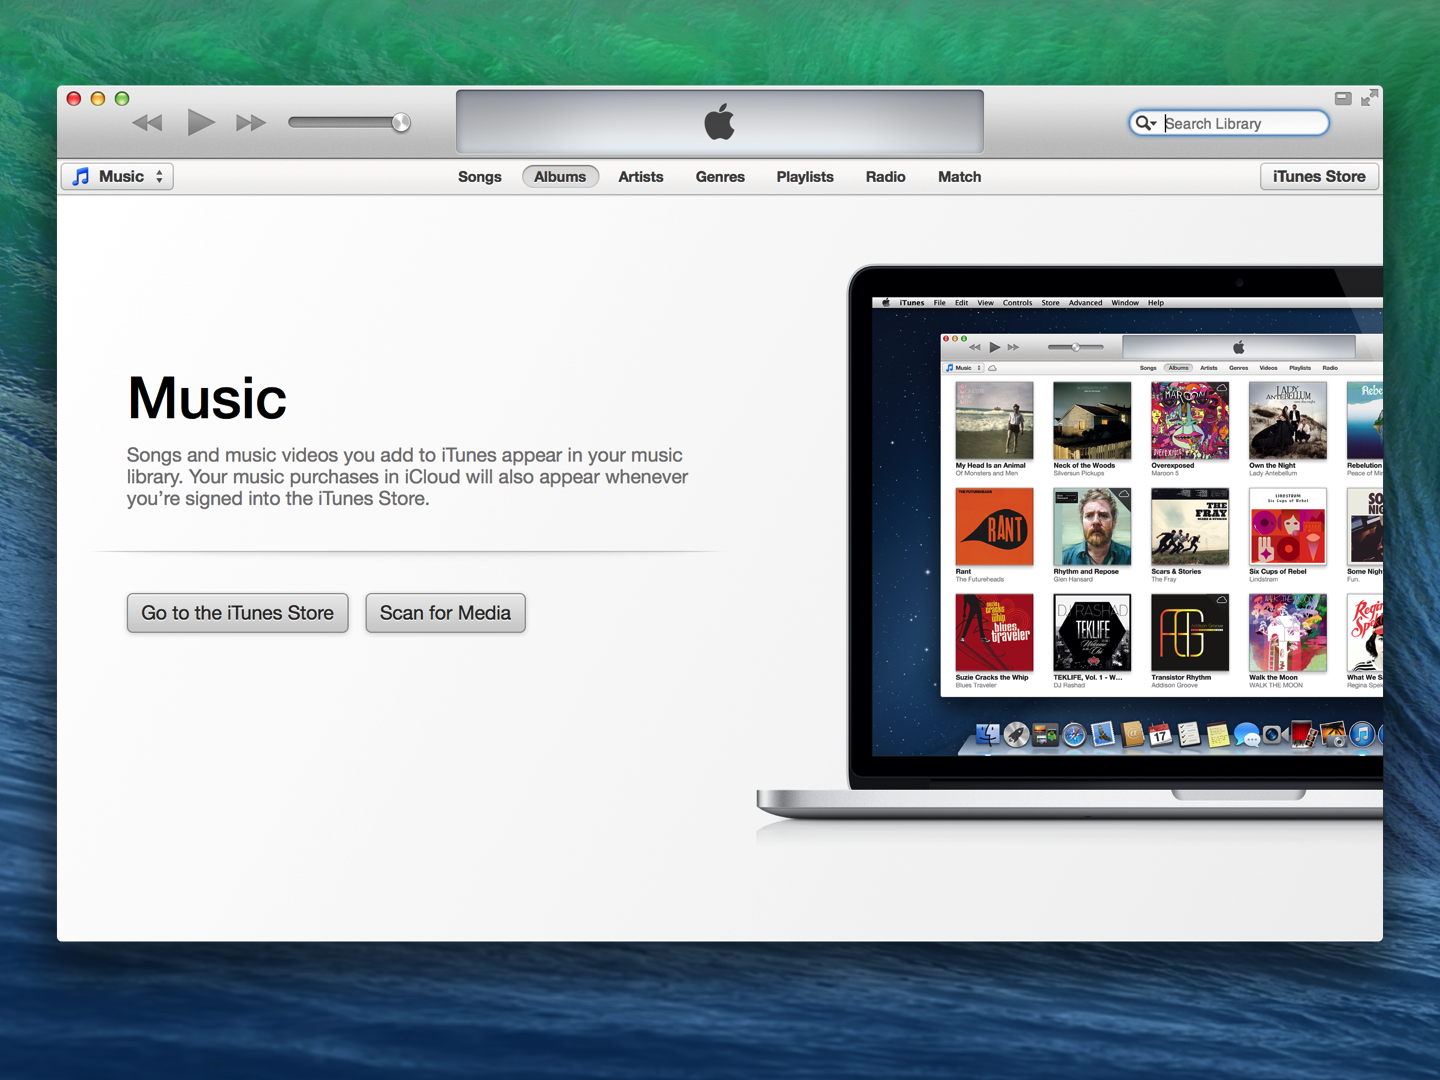 How To Install Apps On Iphone Using Itunes 11